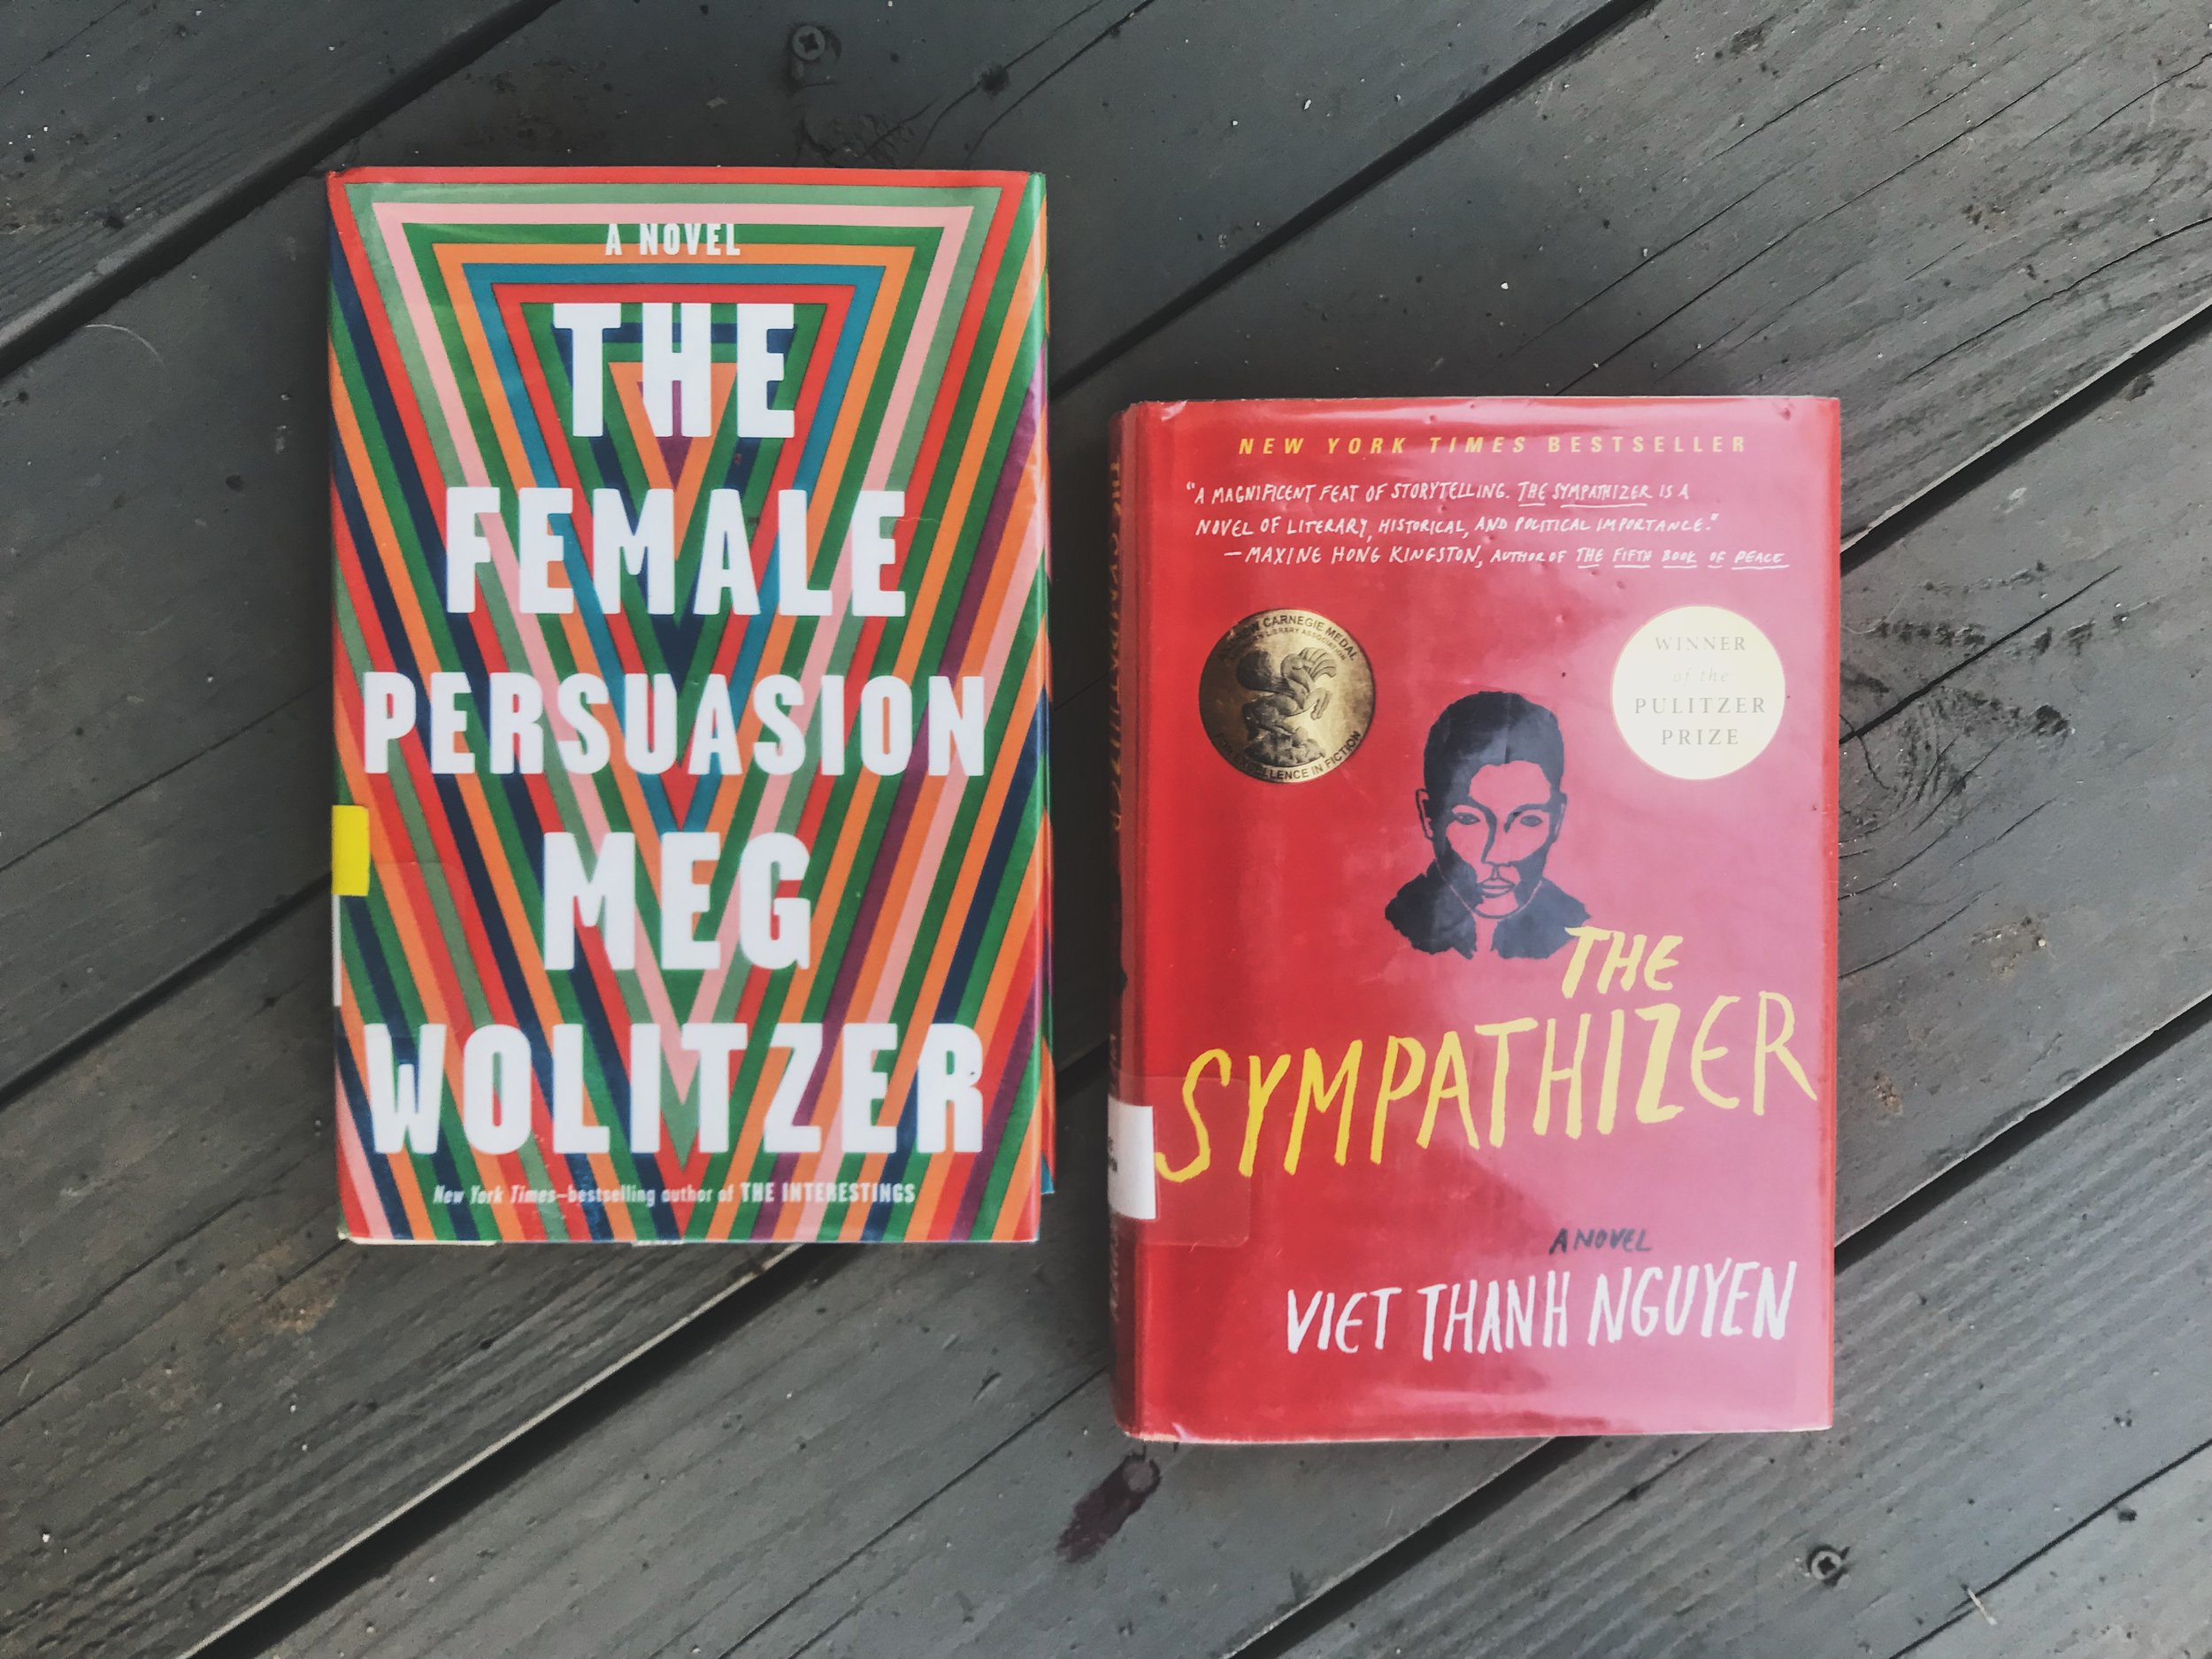 #87 The Female Persuasion + The Sympathizer.JPG